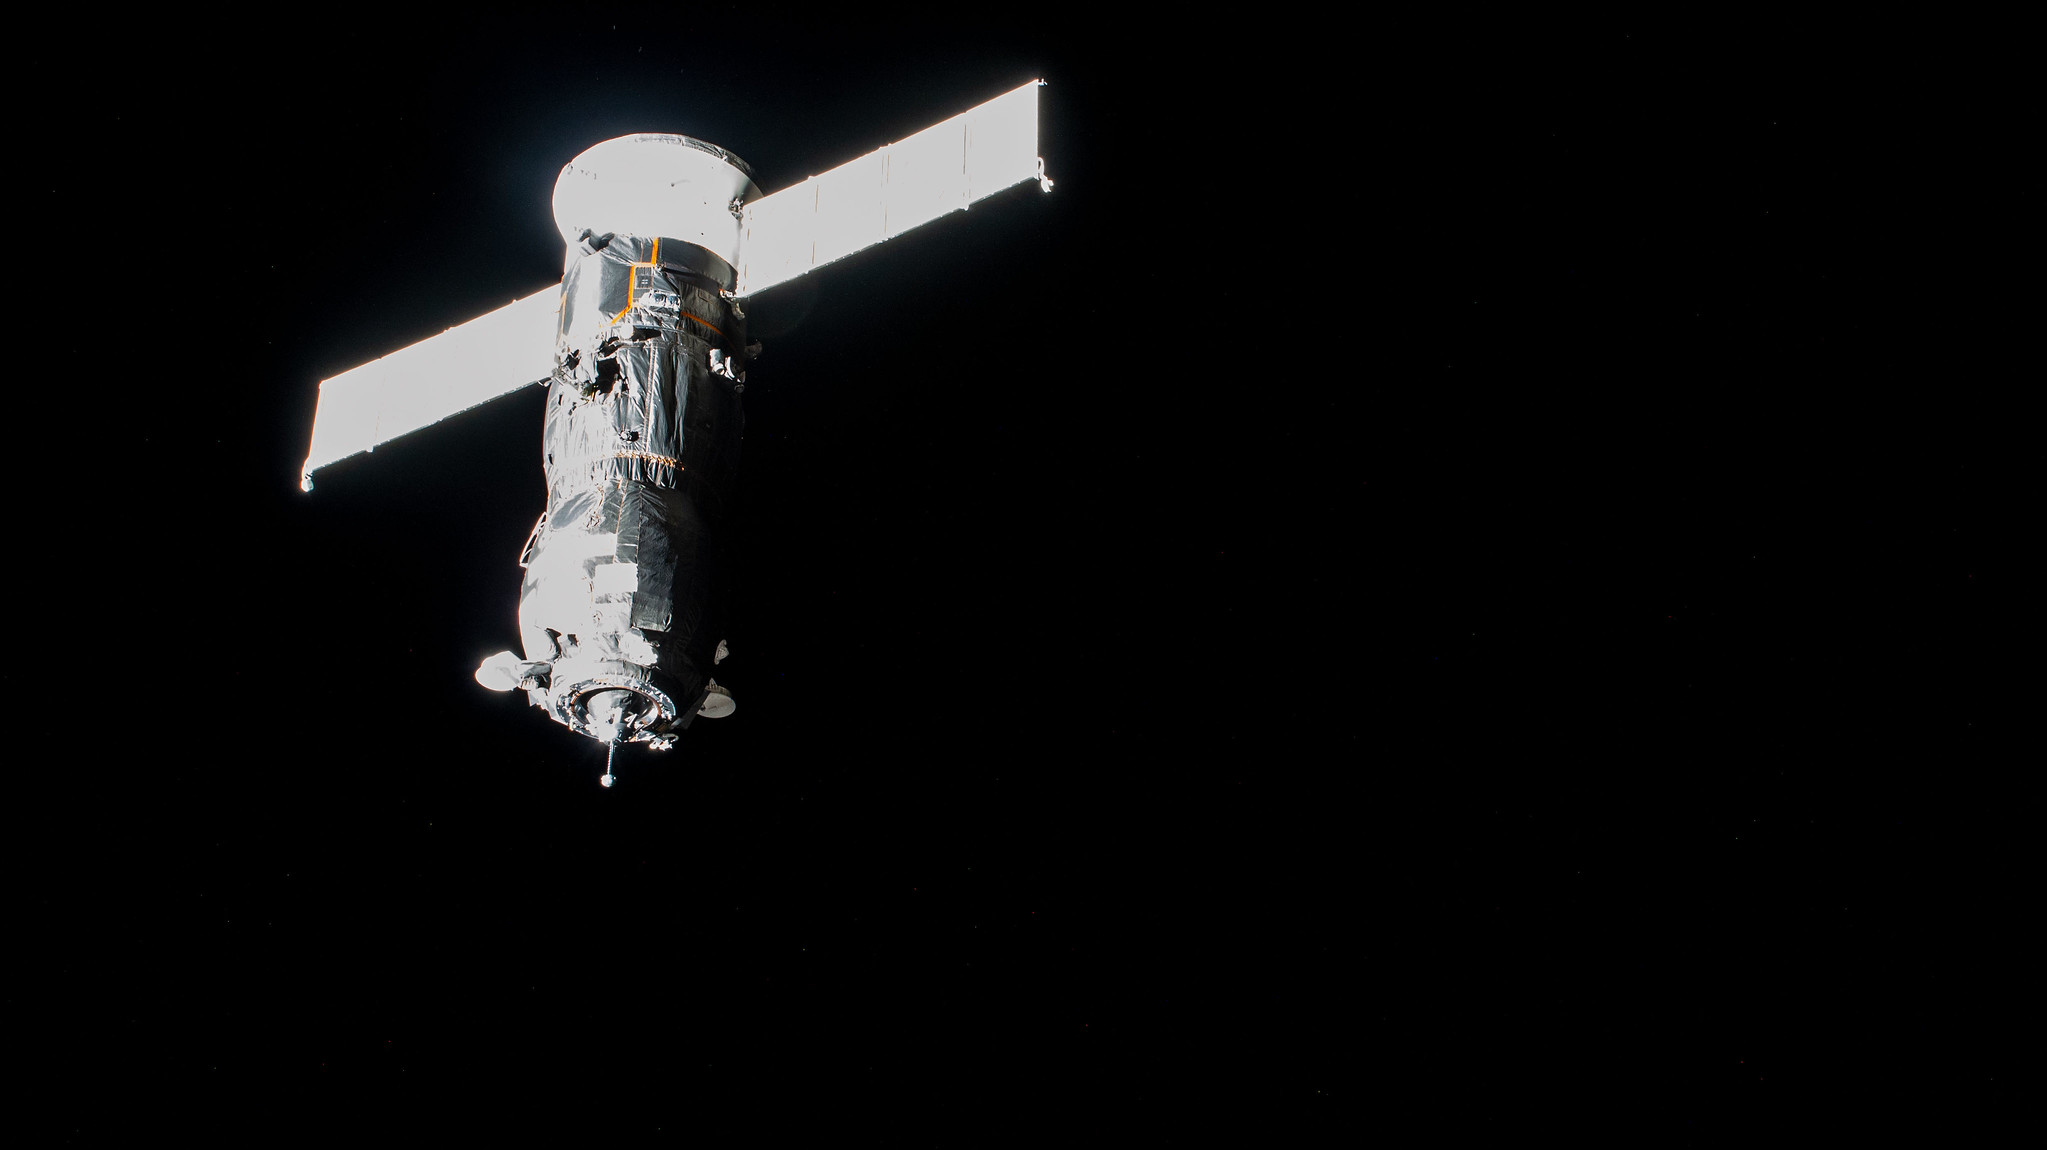 Russia's ISS Progress 78 resupply ship approaches the International Space Station for a docking to the Poisk module two days after lifting off from the Baikonur Cosmodrome in Kazakhstan.